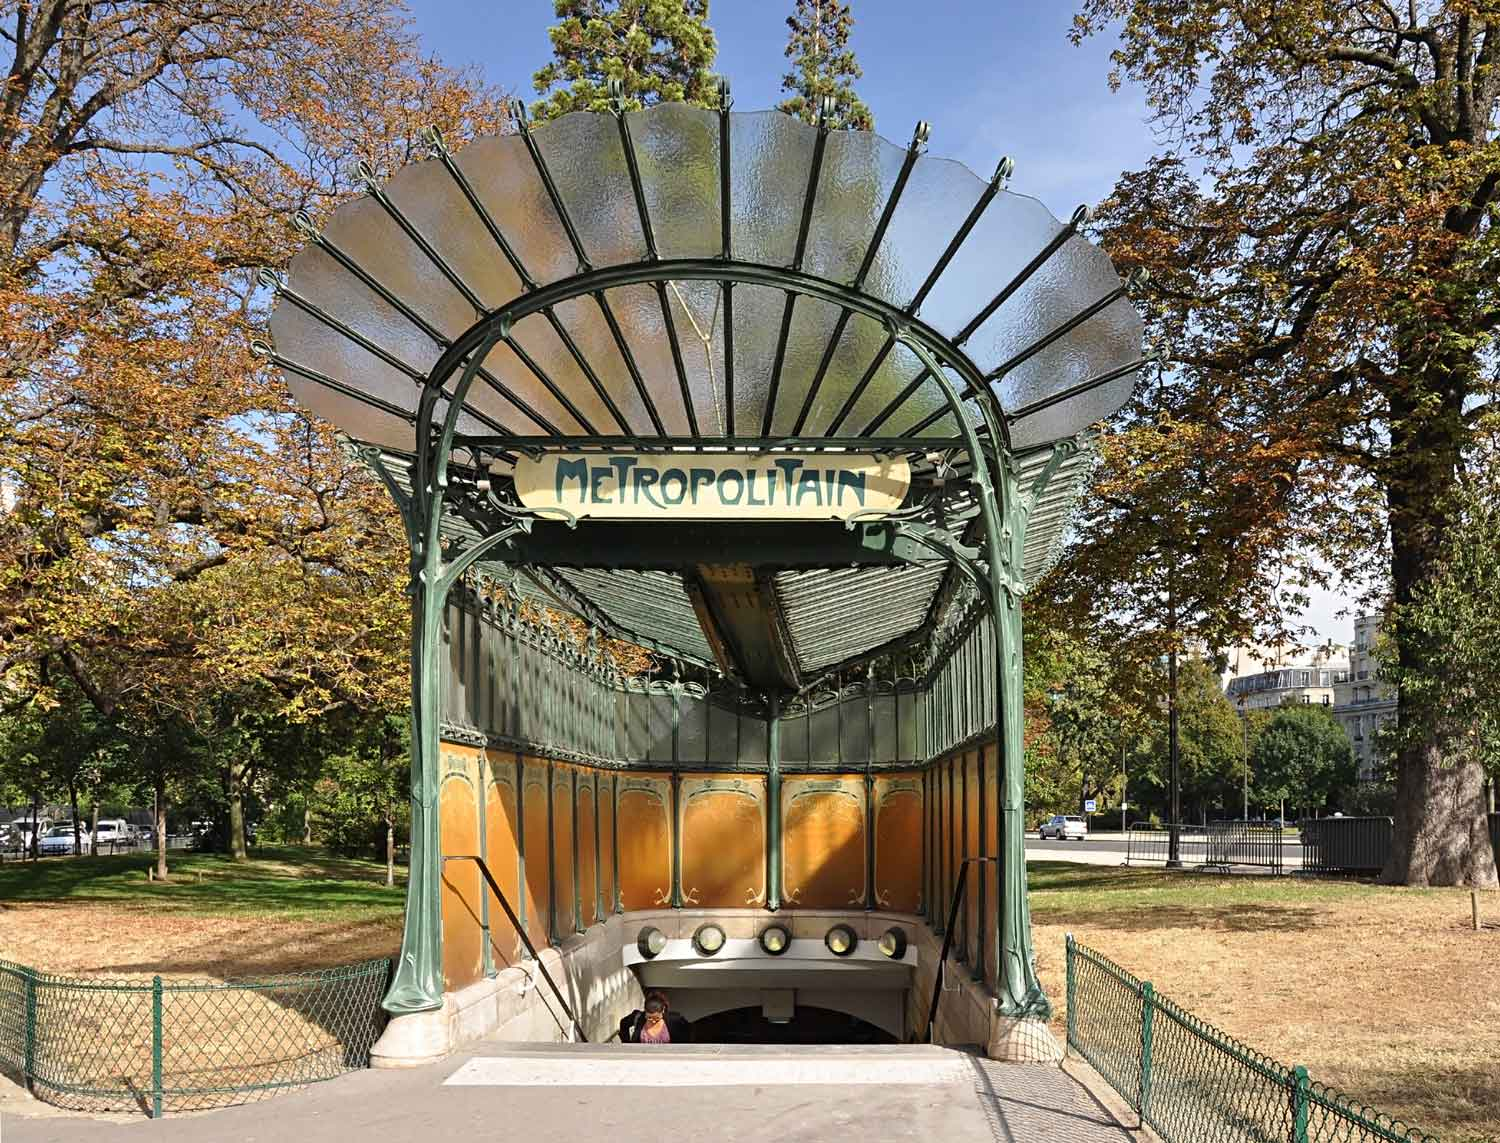 Guimard metro entrance, Porte Dauphine in Paris